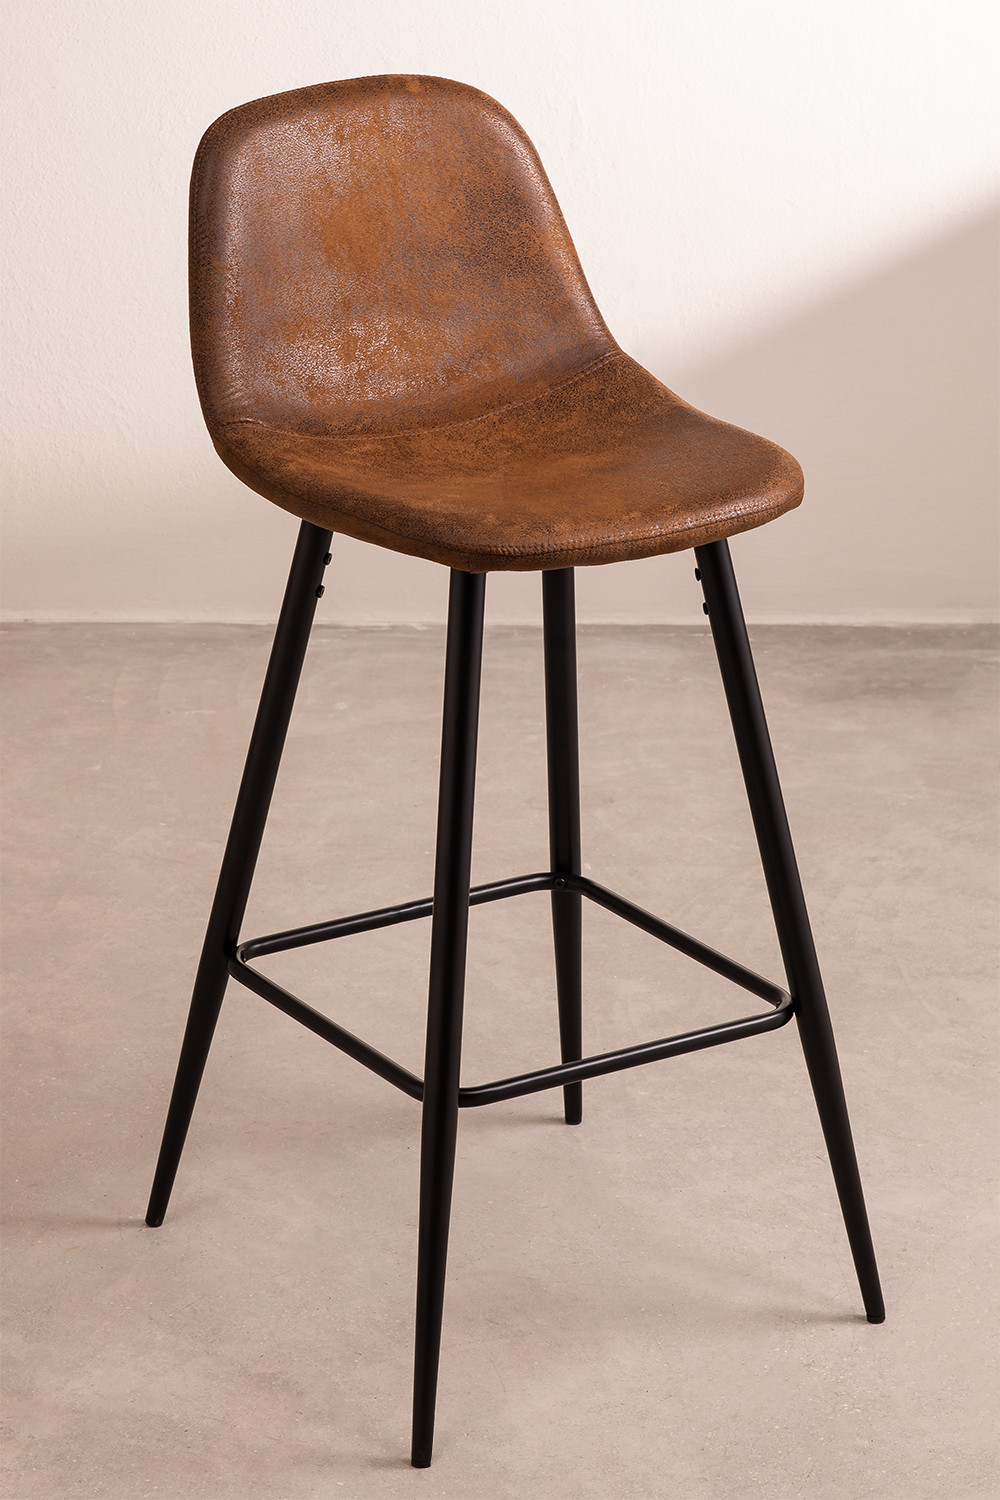 Pack 4 High Stools in Leatherette Glamm, gallery image 1